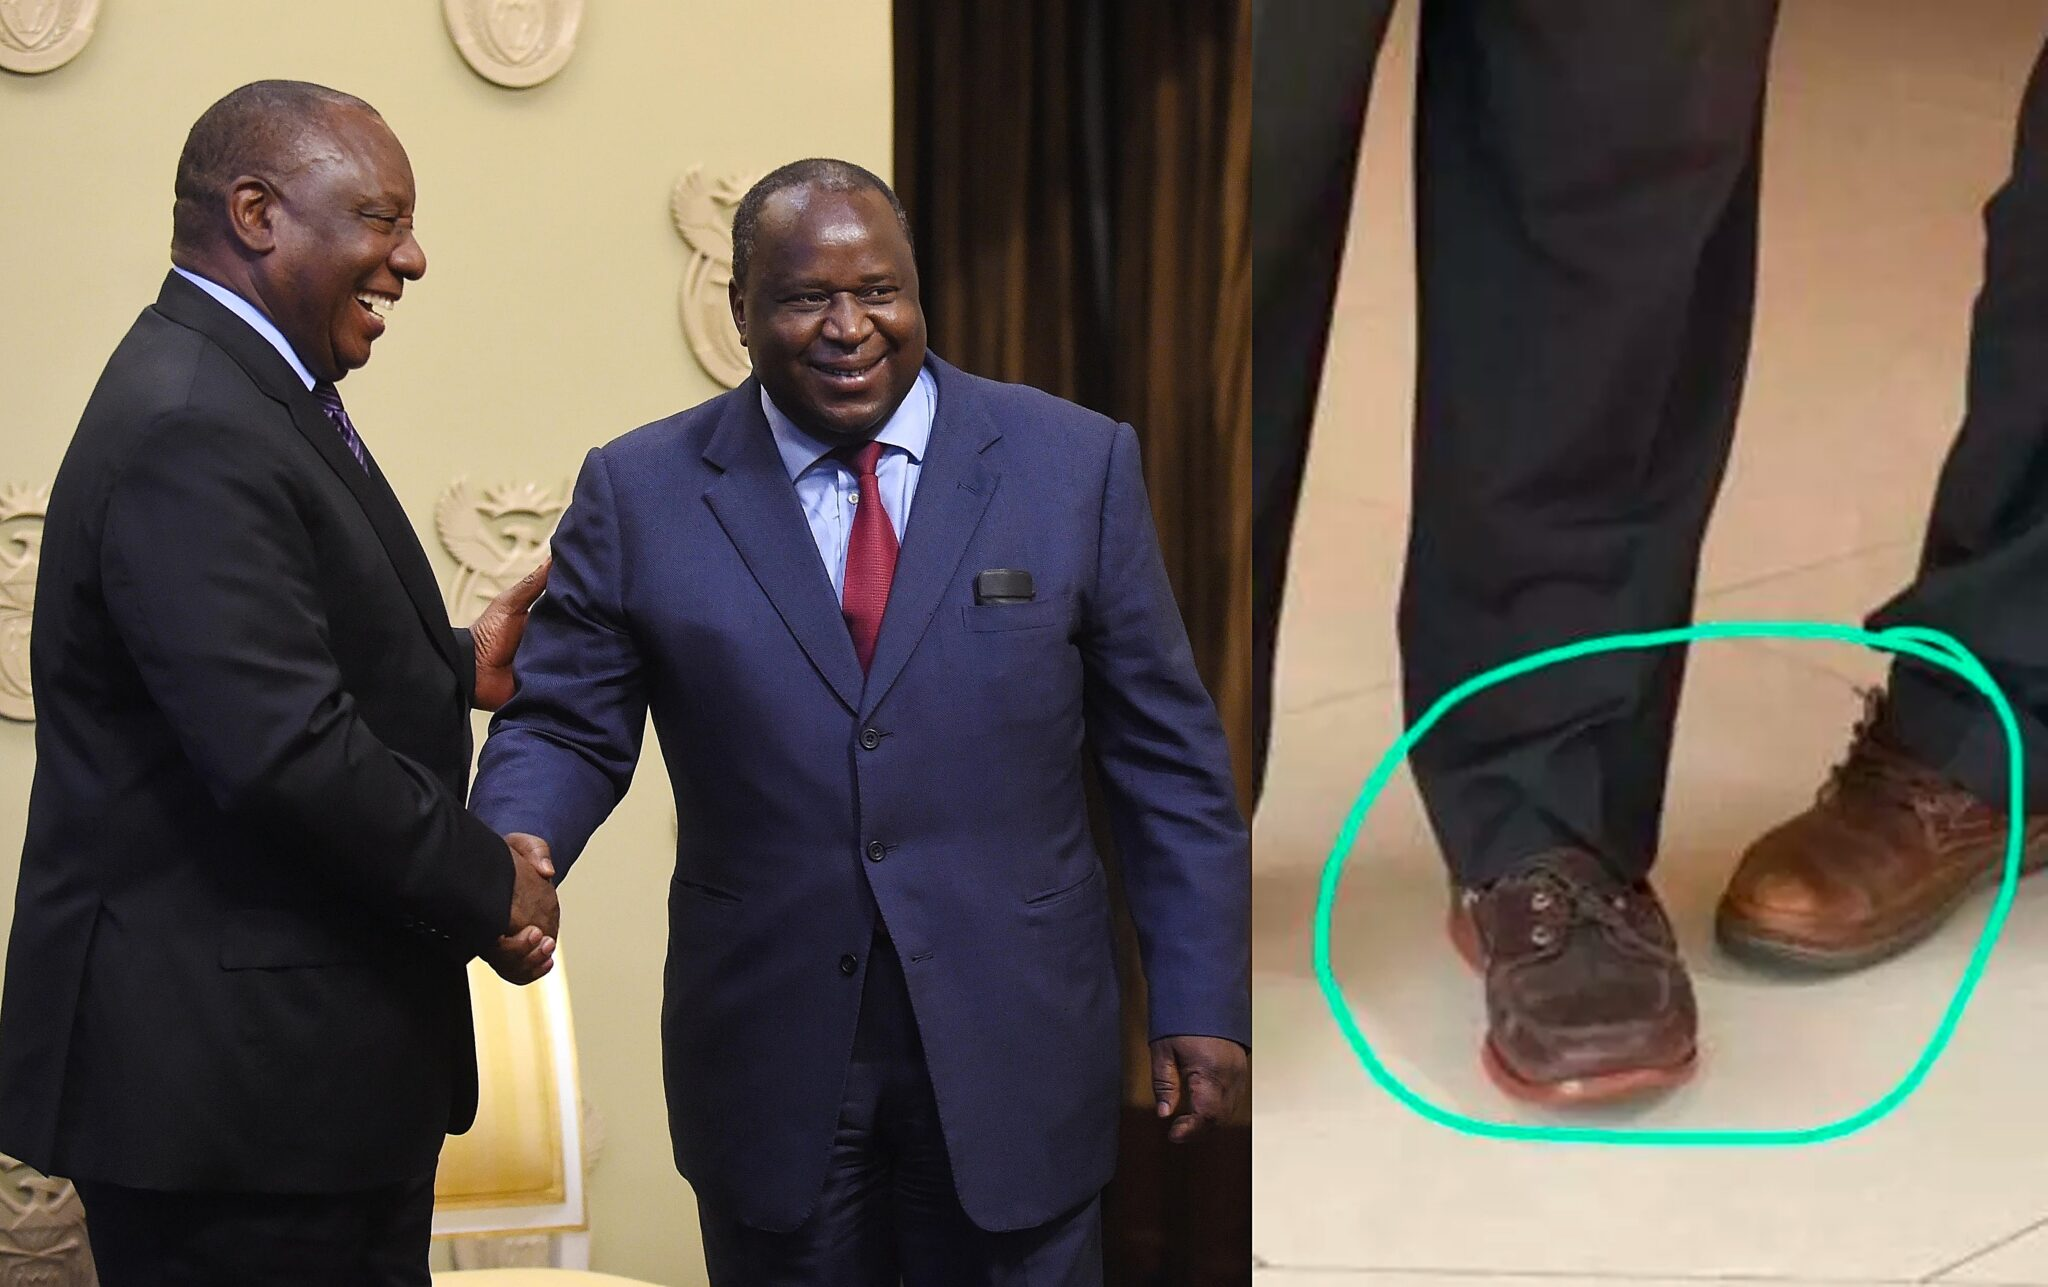 President Cyril Ramaphosa reprimands Minister Mboweni over tweets on Zambia